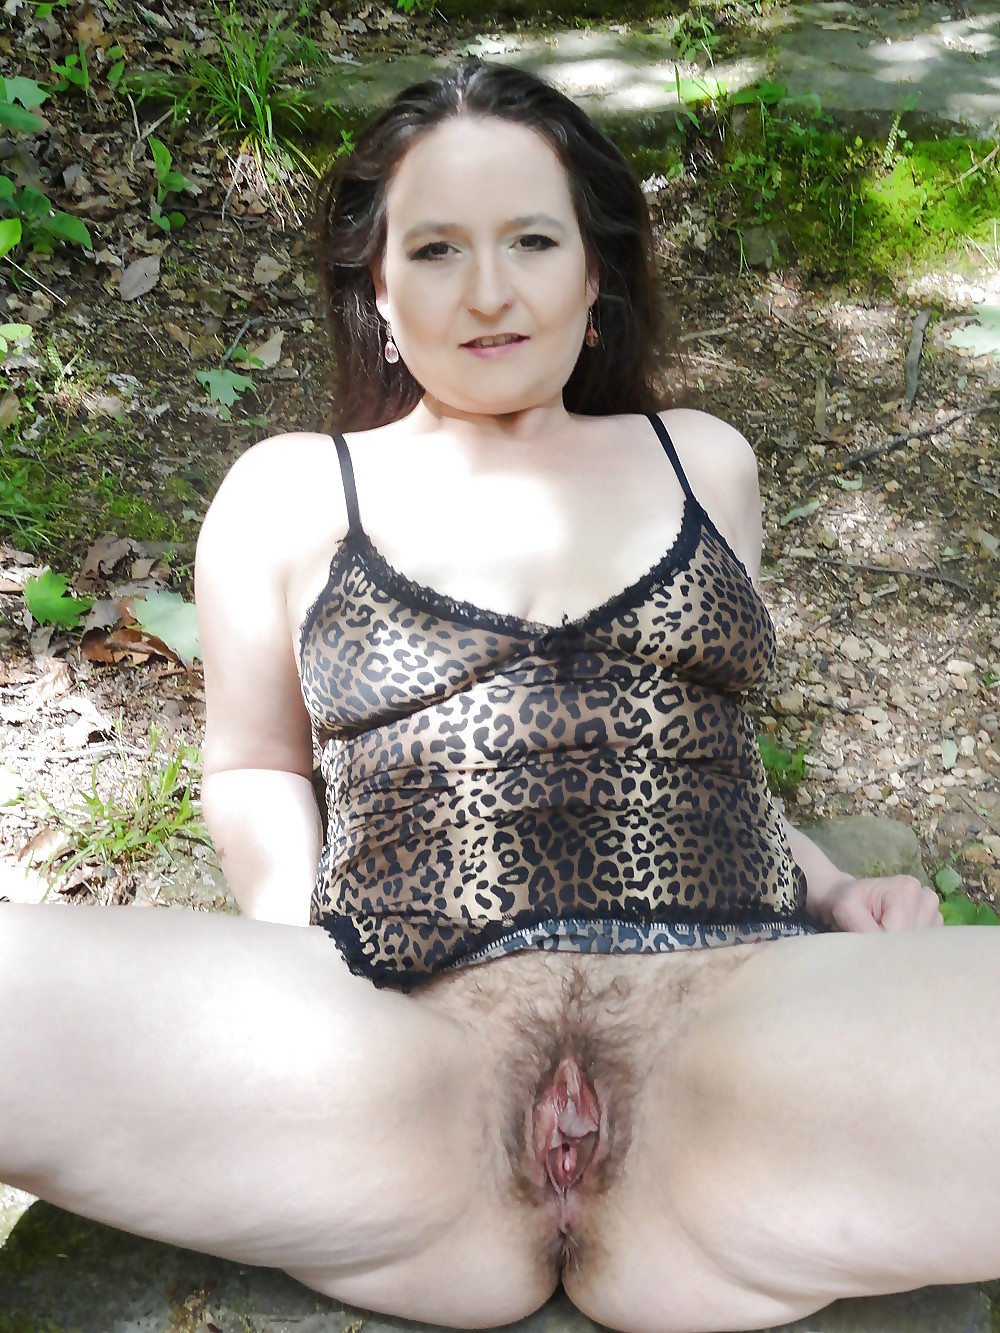 Pussy hairy pics old Hot Old